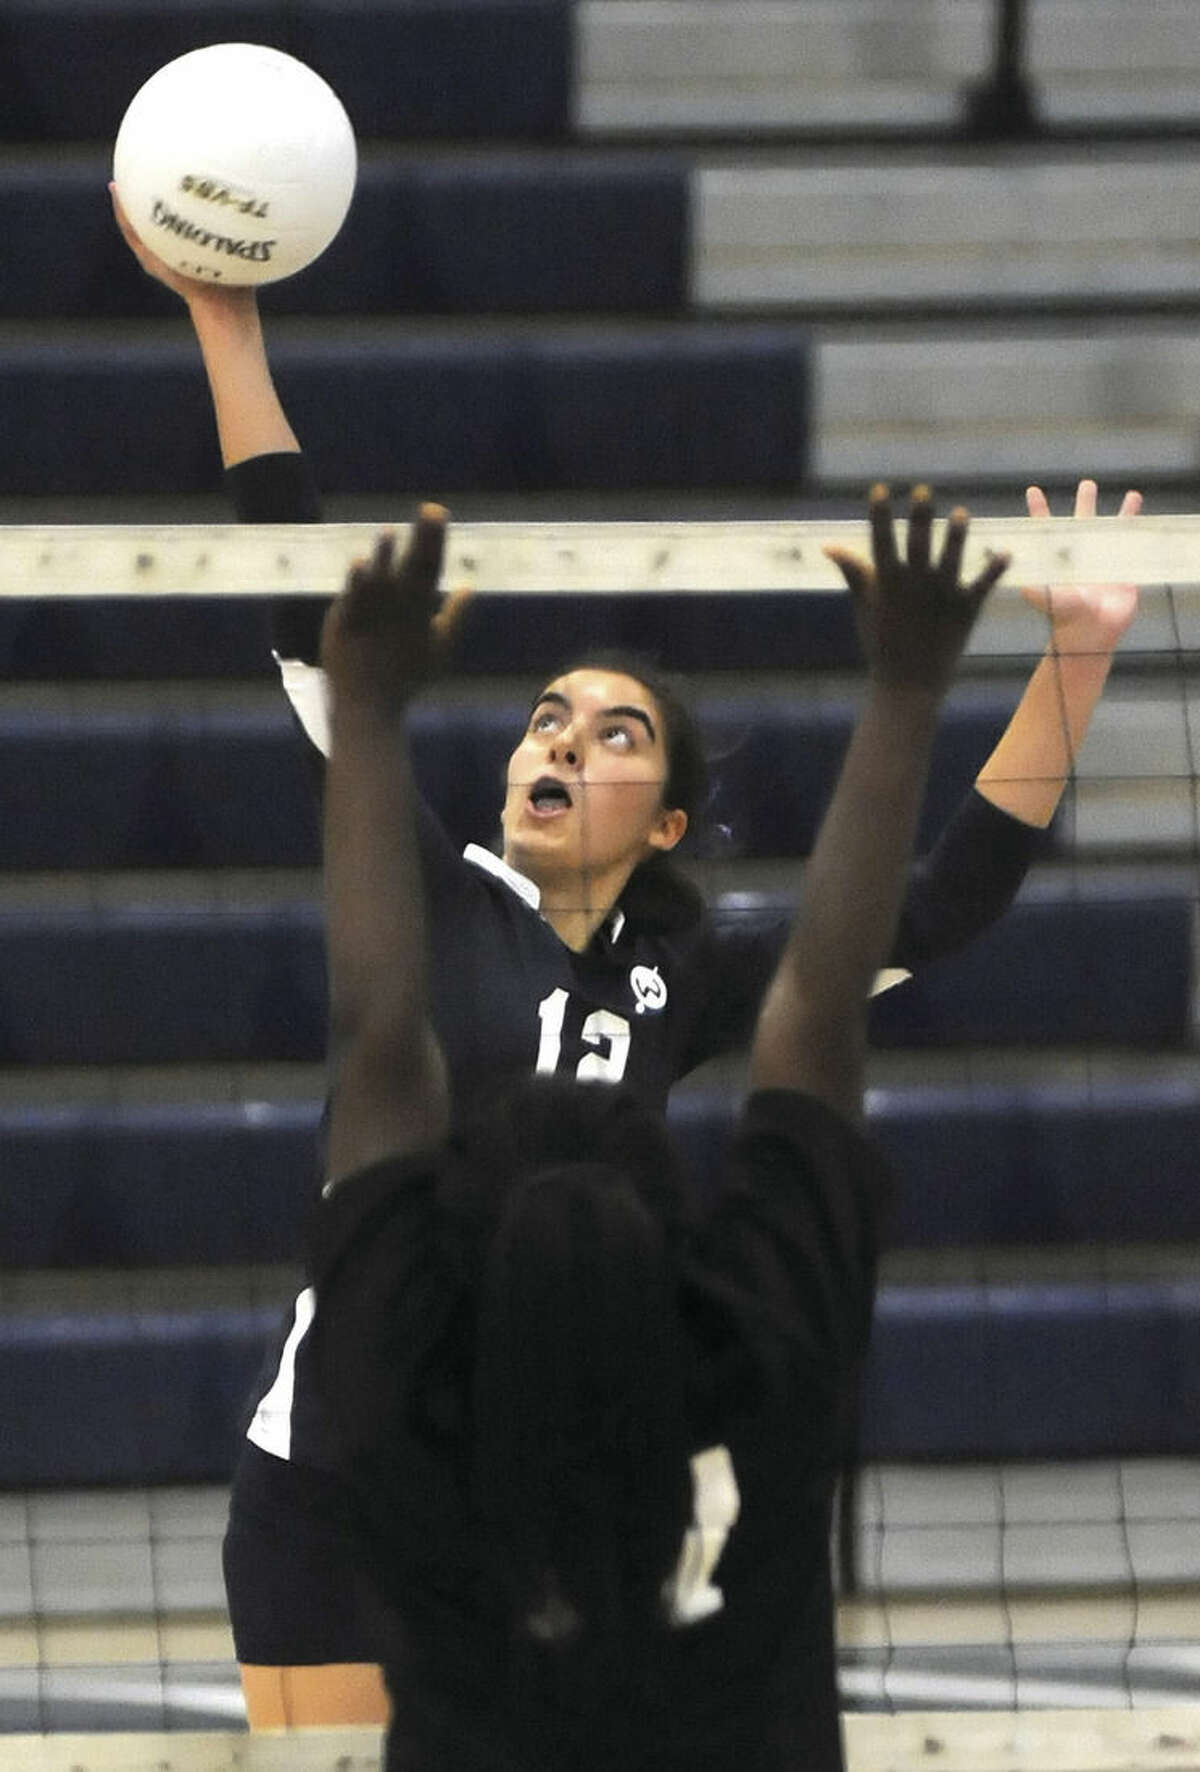 Hour photo/John Nash Wilton's Carly Lovallo, rear, sends down a spike past a Bridgeport Central defender during Wednesday's FCIAC volleyball game at the Zeoli Field House in Wilton.